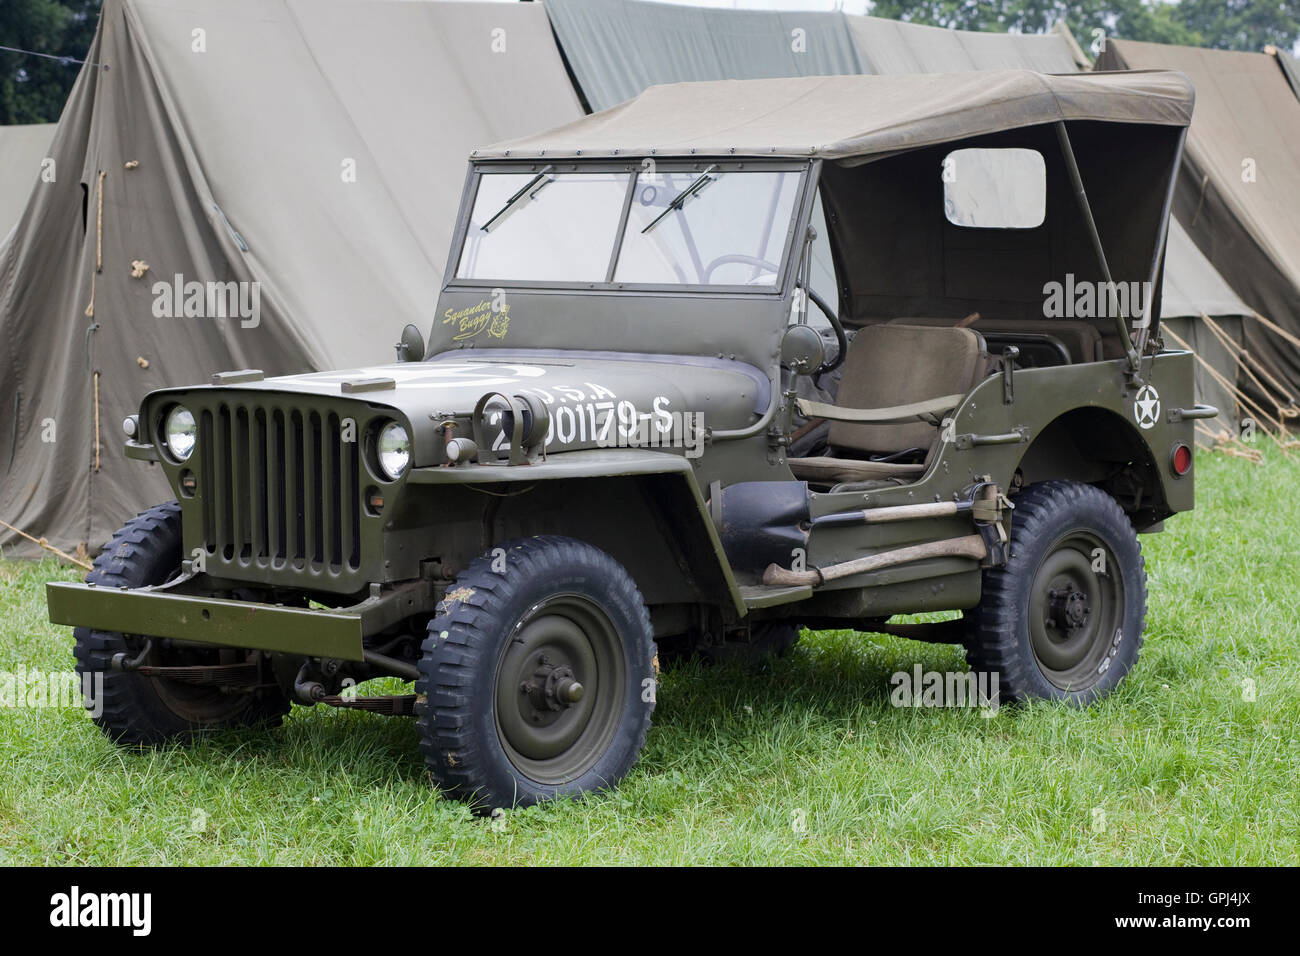 willys army jeep photos willys army jeep images alamy. Black Bedroom Furniture Sets. Home Design Ideas